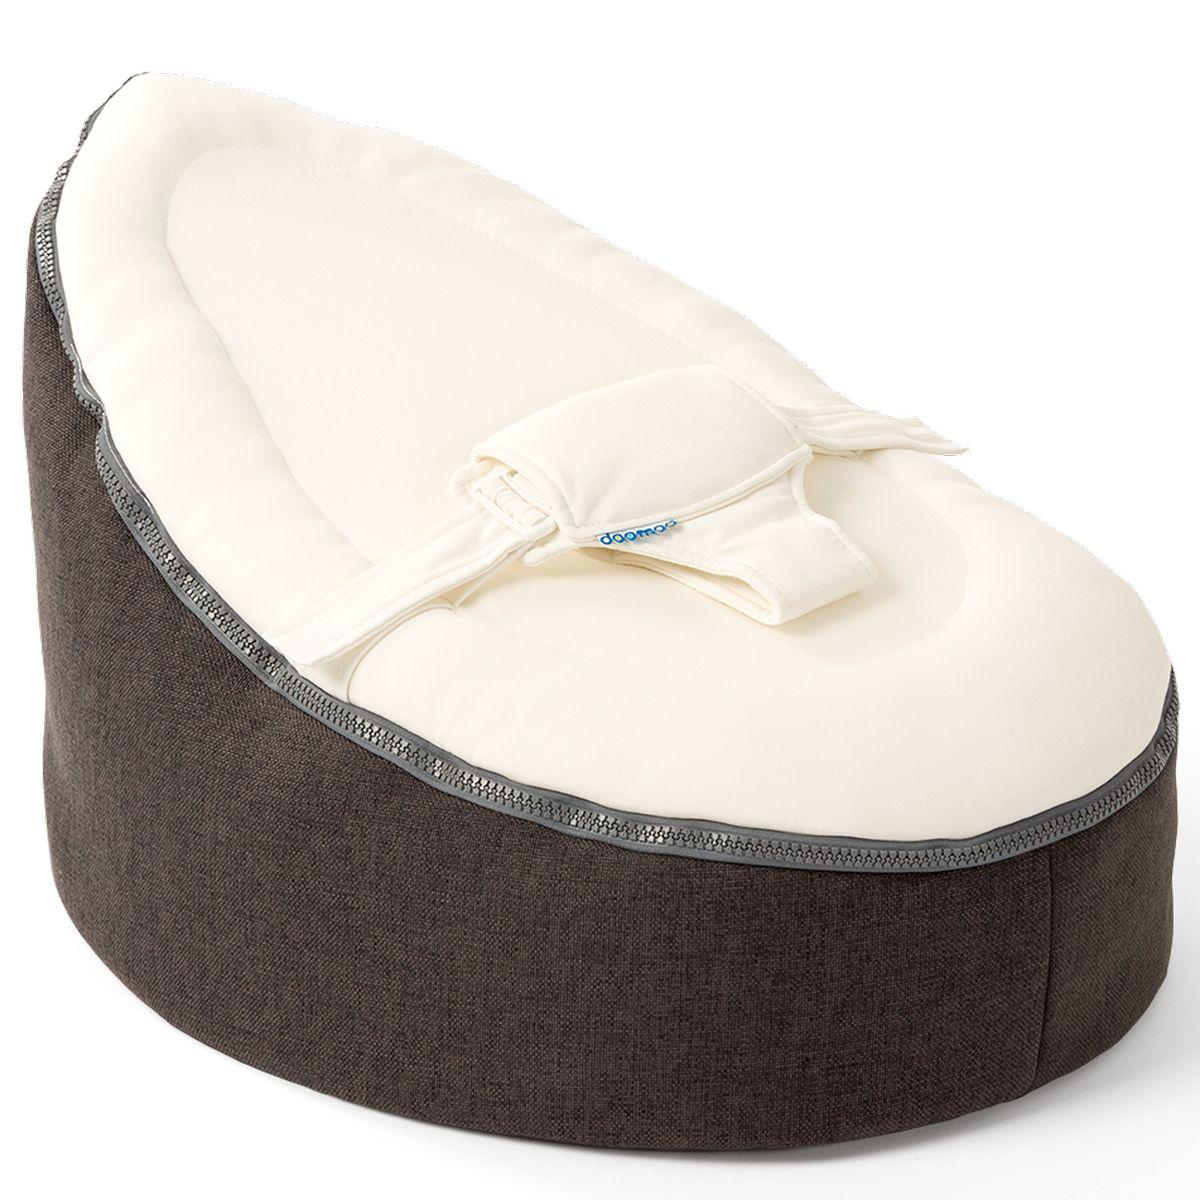 Pouf-relax SEAT doomoo home gris